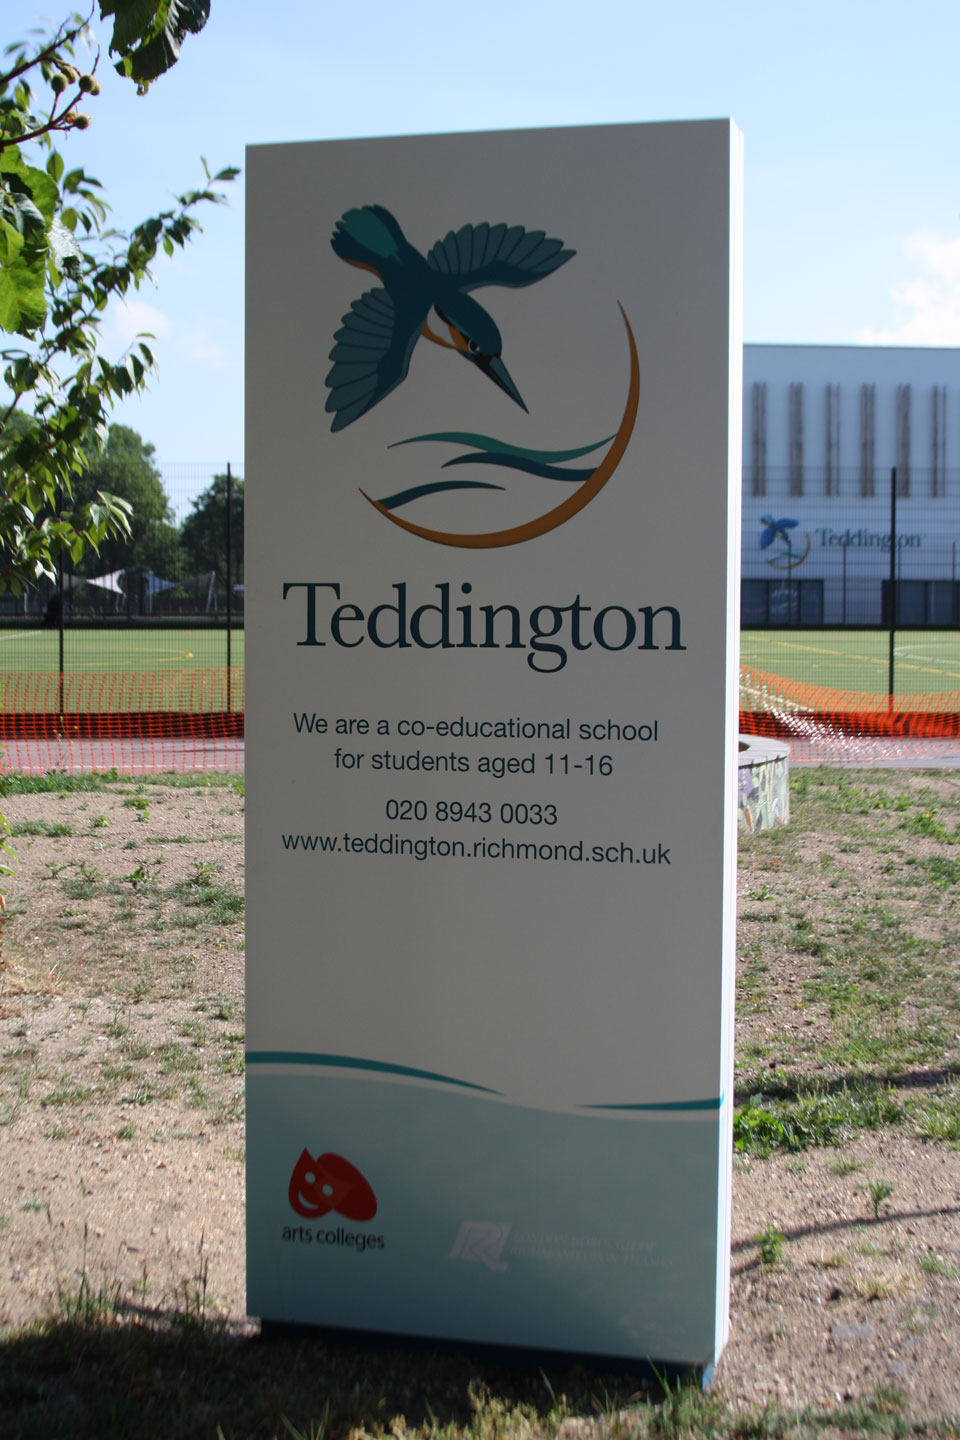 Teddington Entrance and Building Identity